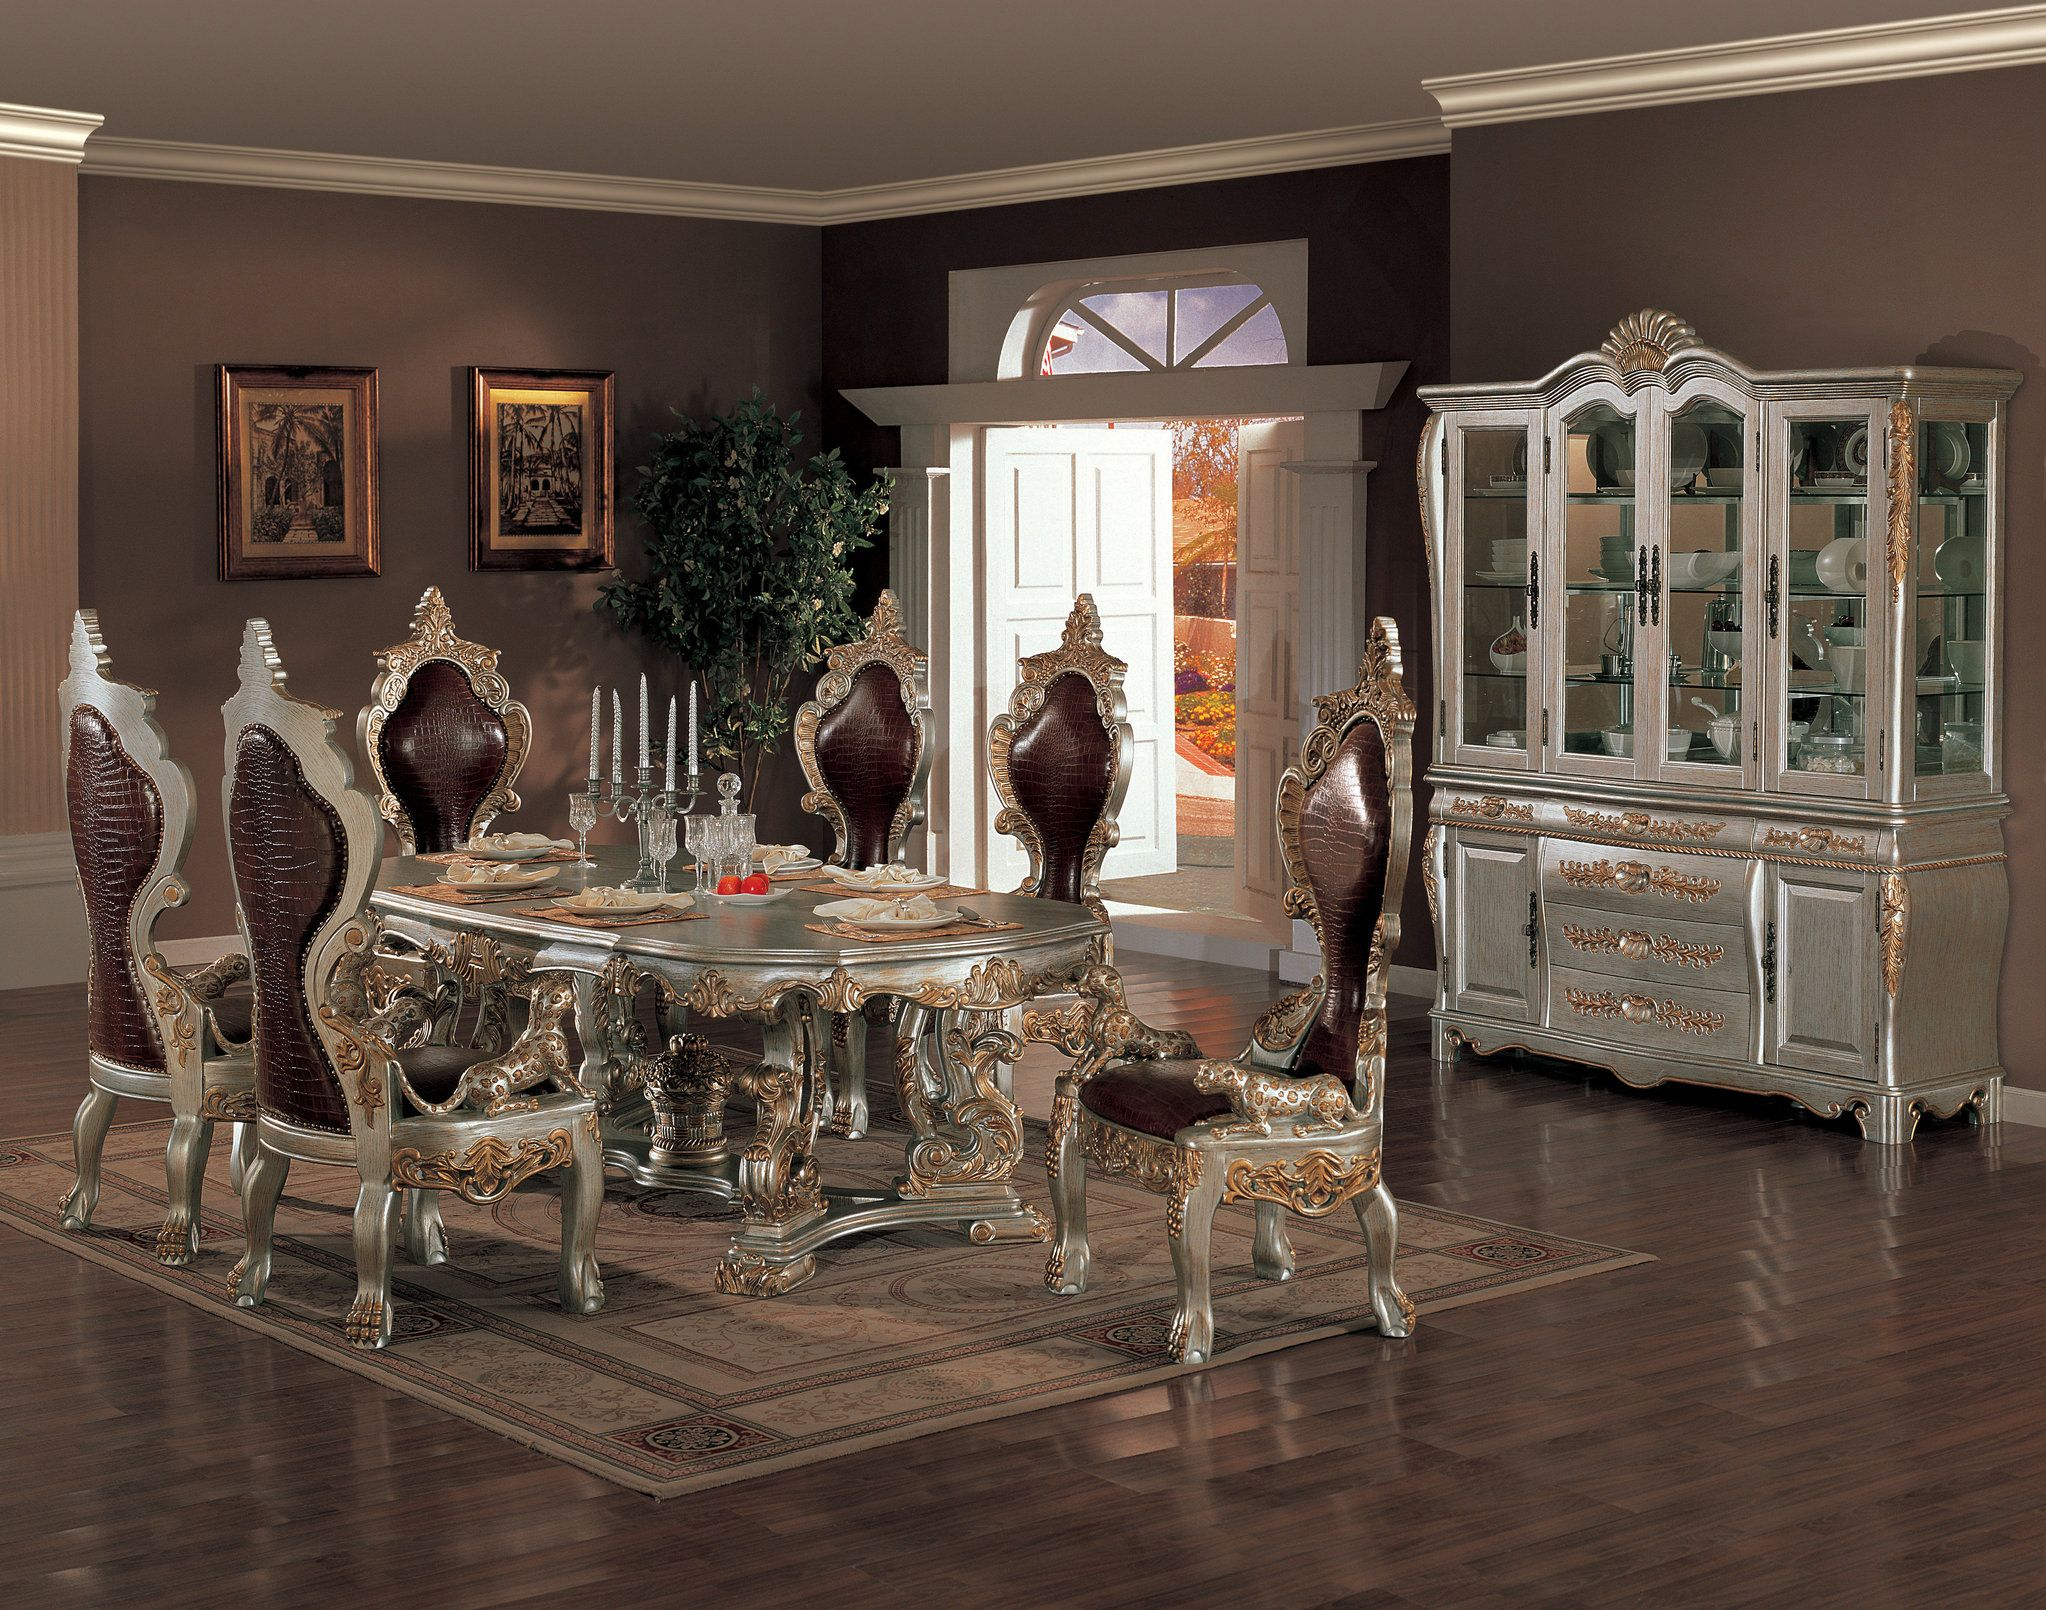 Fancy Dining Room Sets Dining Room With Buffet Table Elegant And Ornate Wood